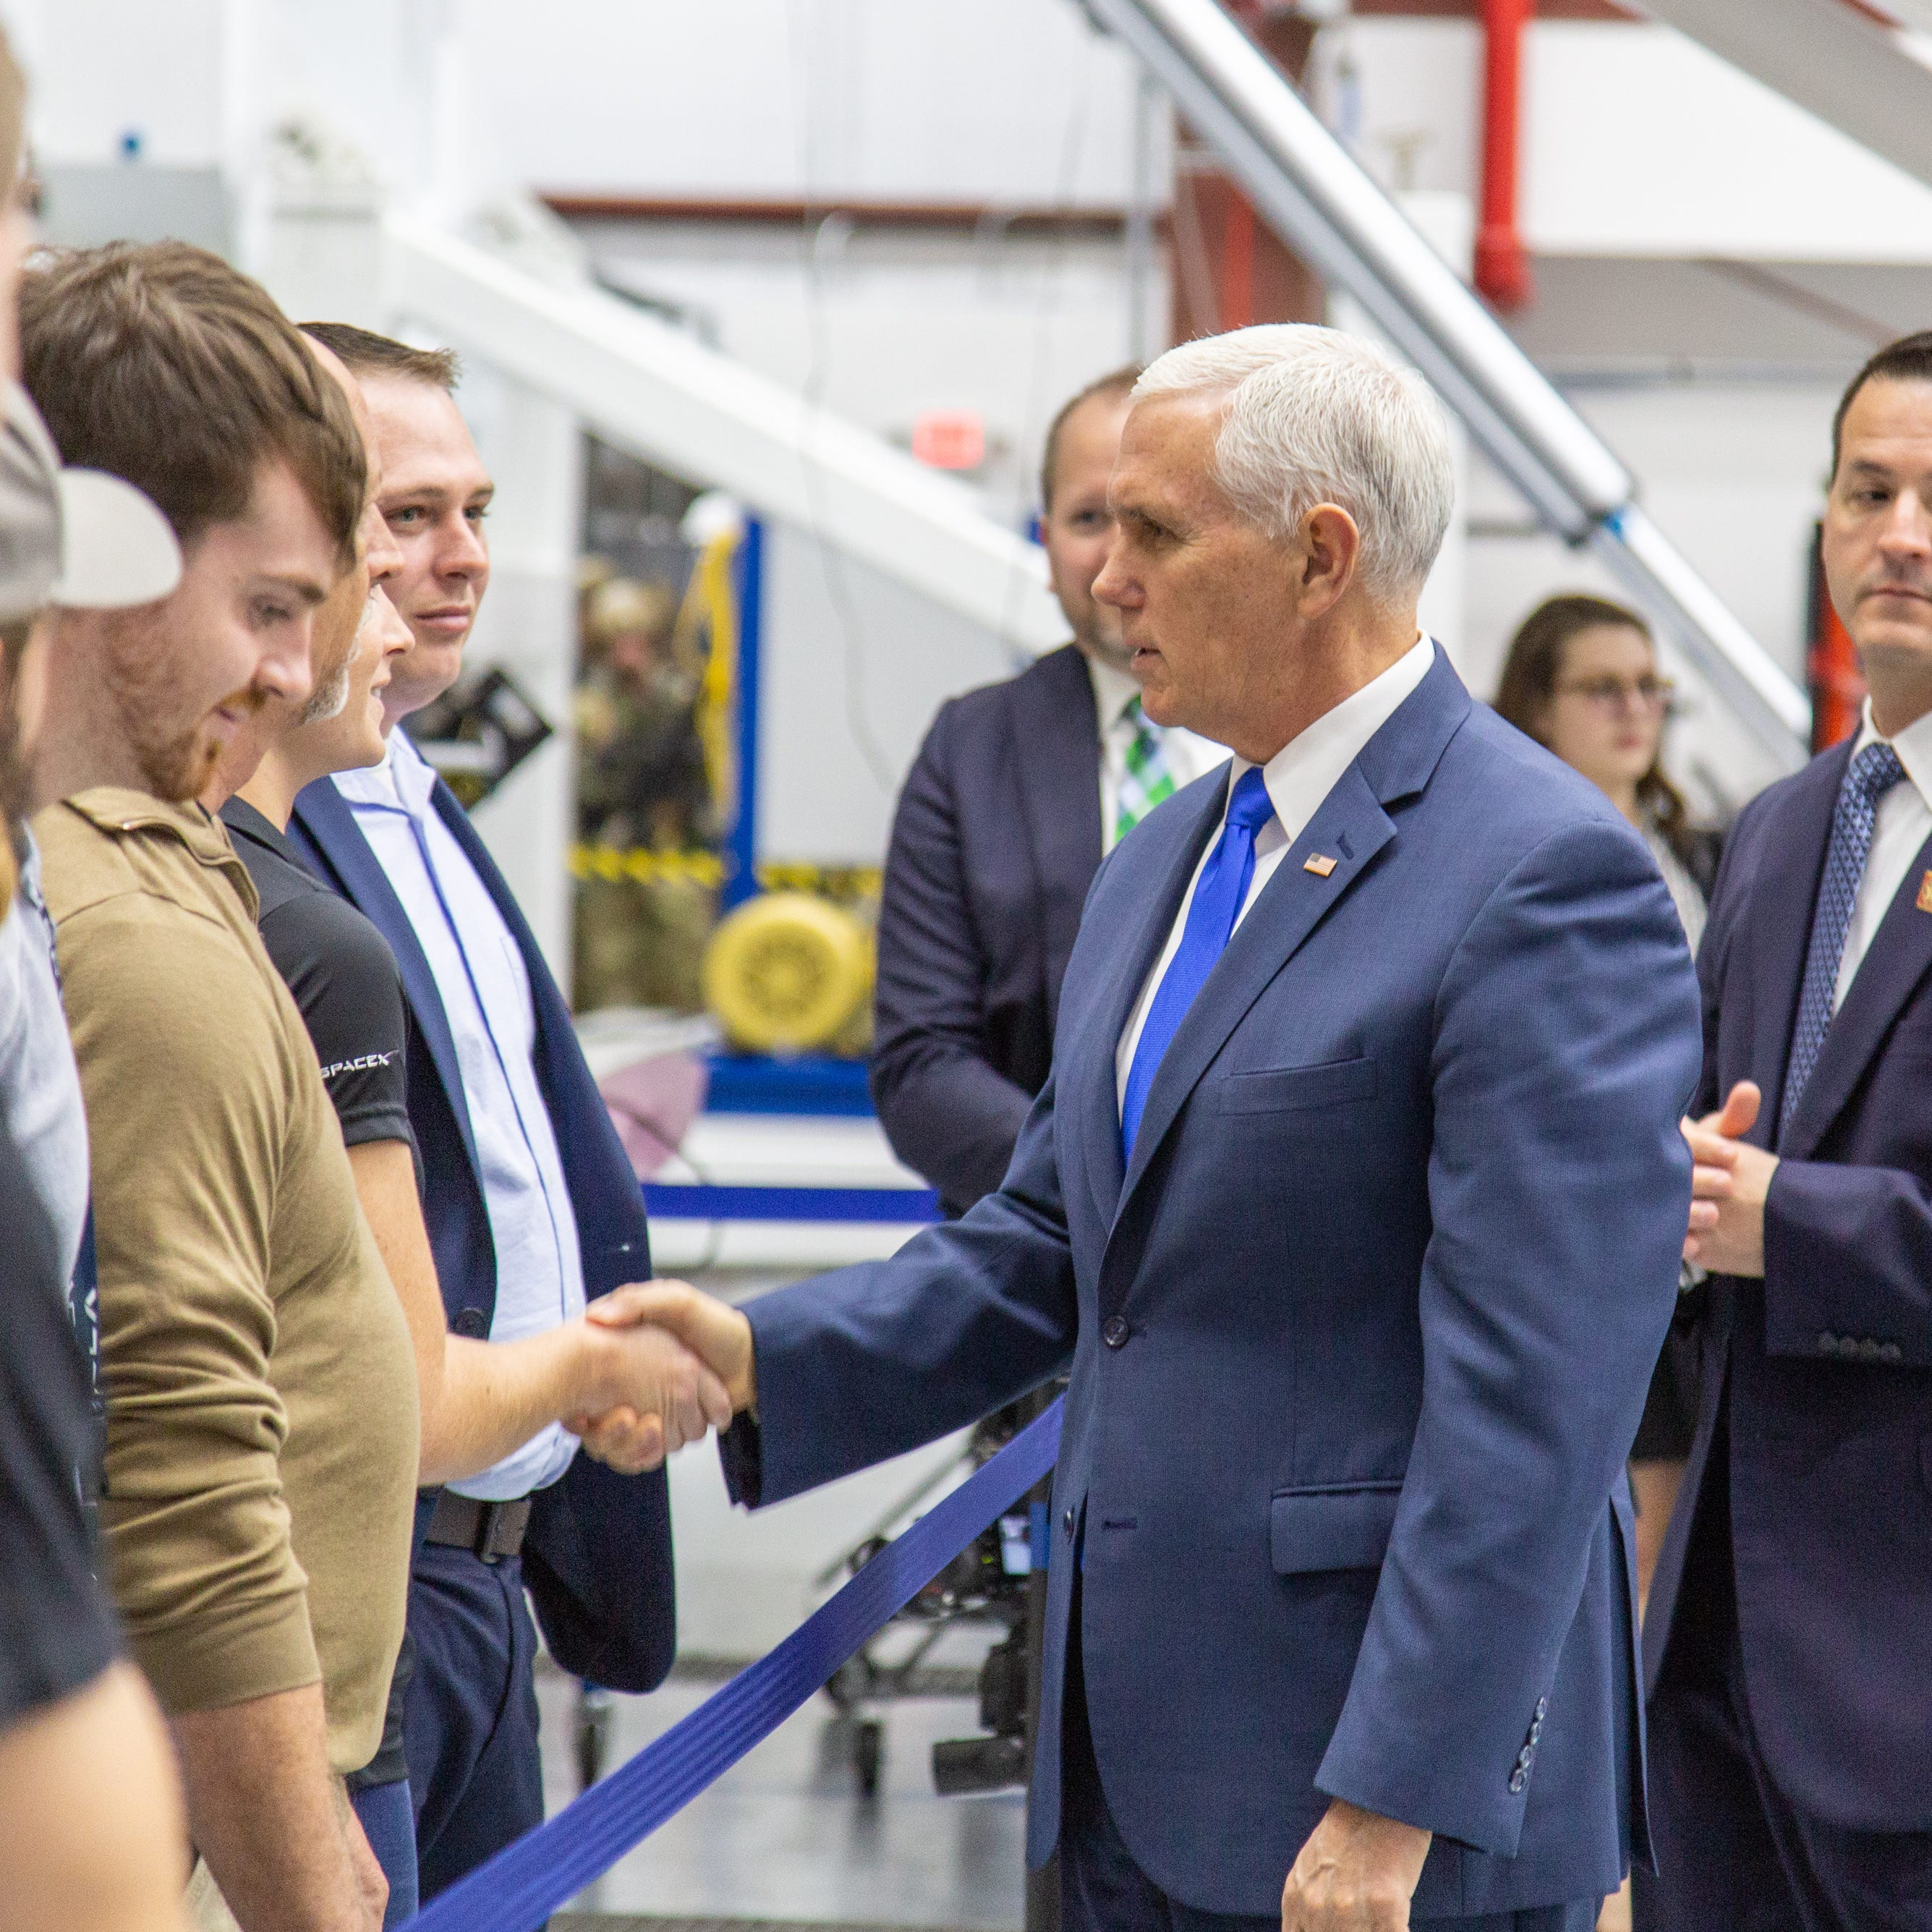 Vice President Pence visited SpaceX's pad 39A in Florida. Here's what he saw.